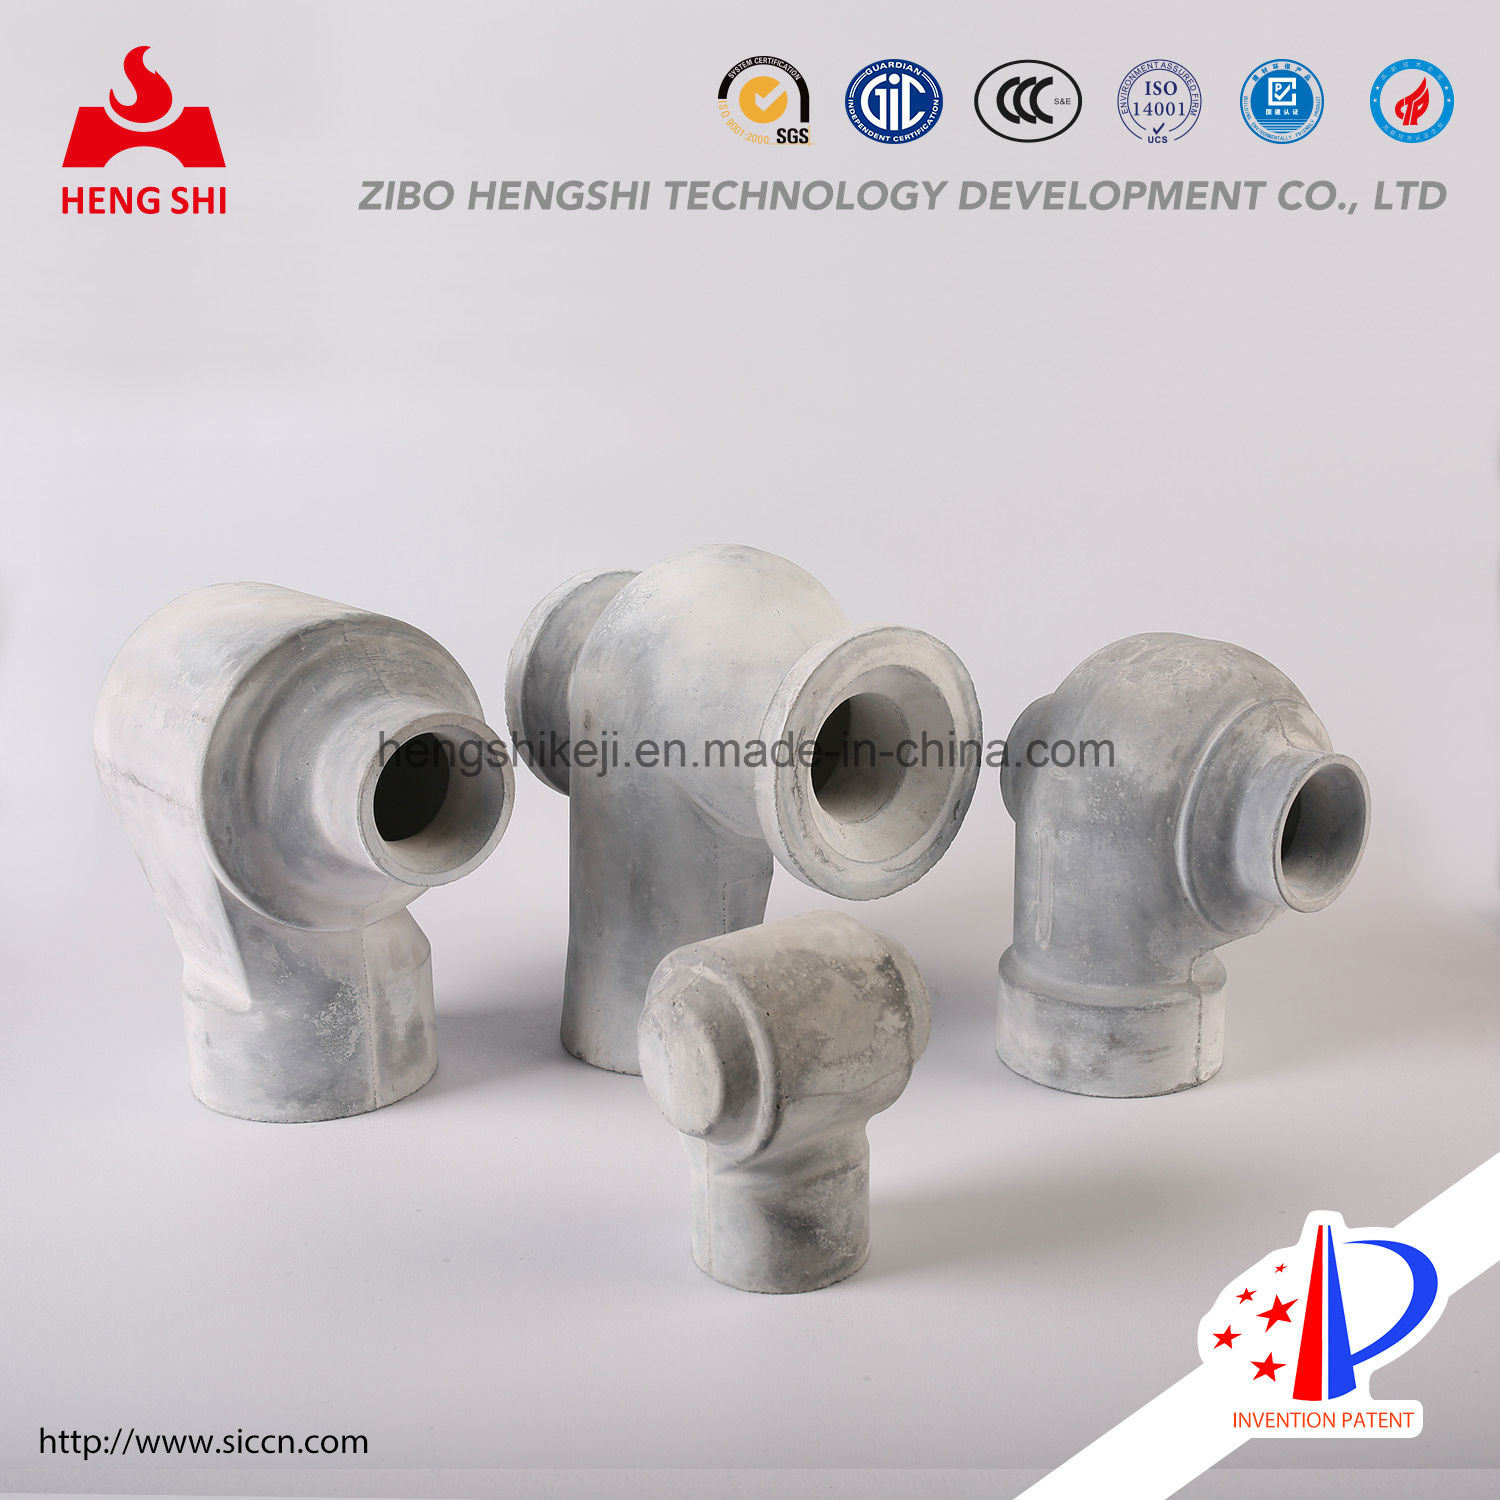 Silicon Nitride Bonded Silicon Carbide Nozzle Used for Desulfuration and Denitration in Environment Protection Industry